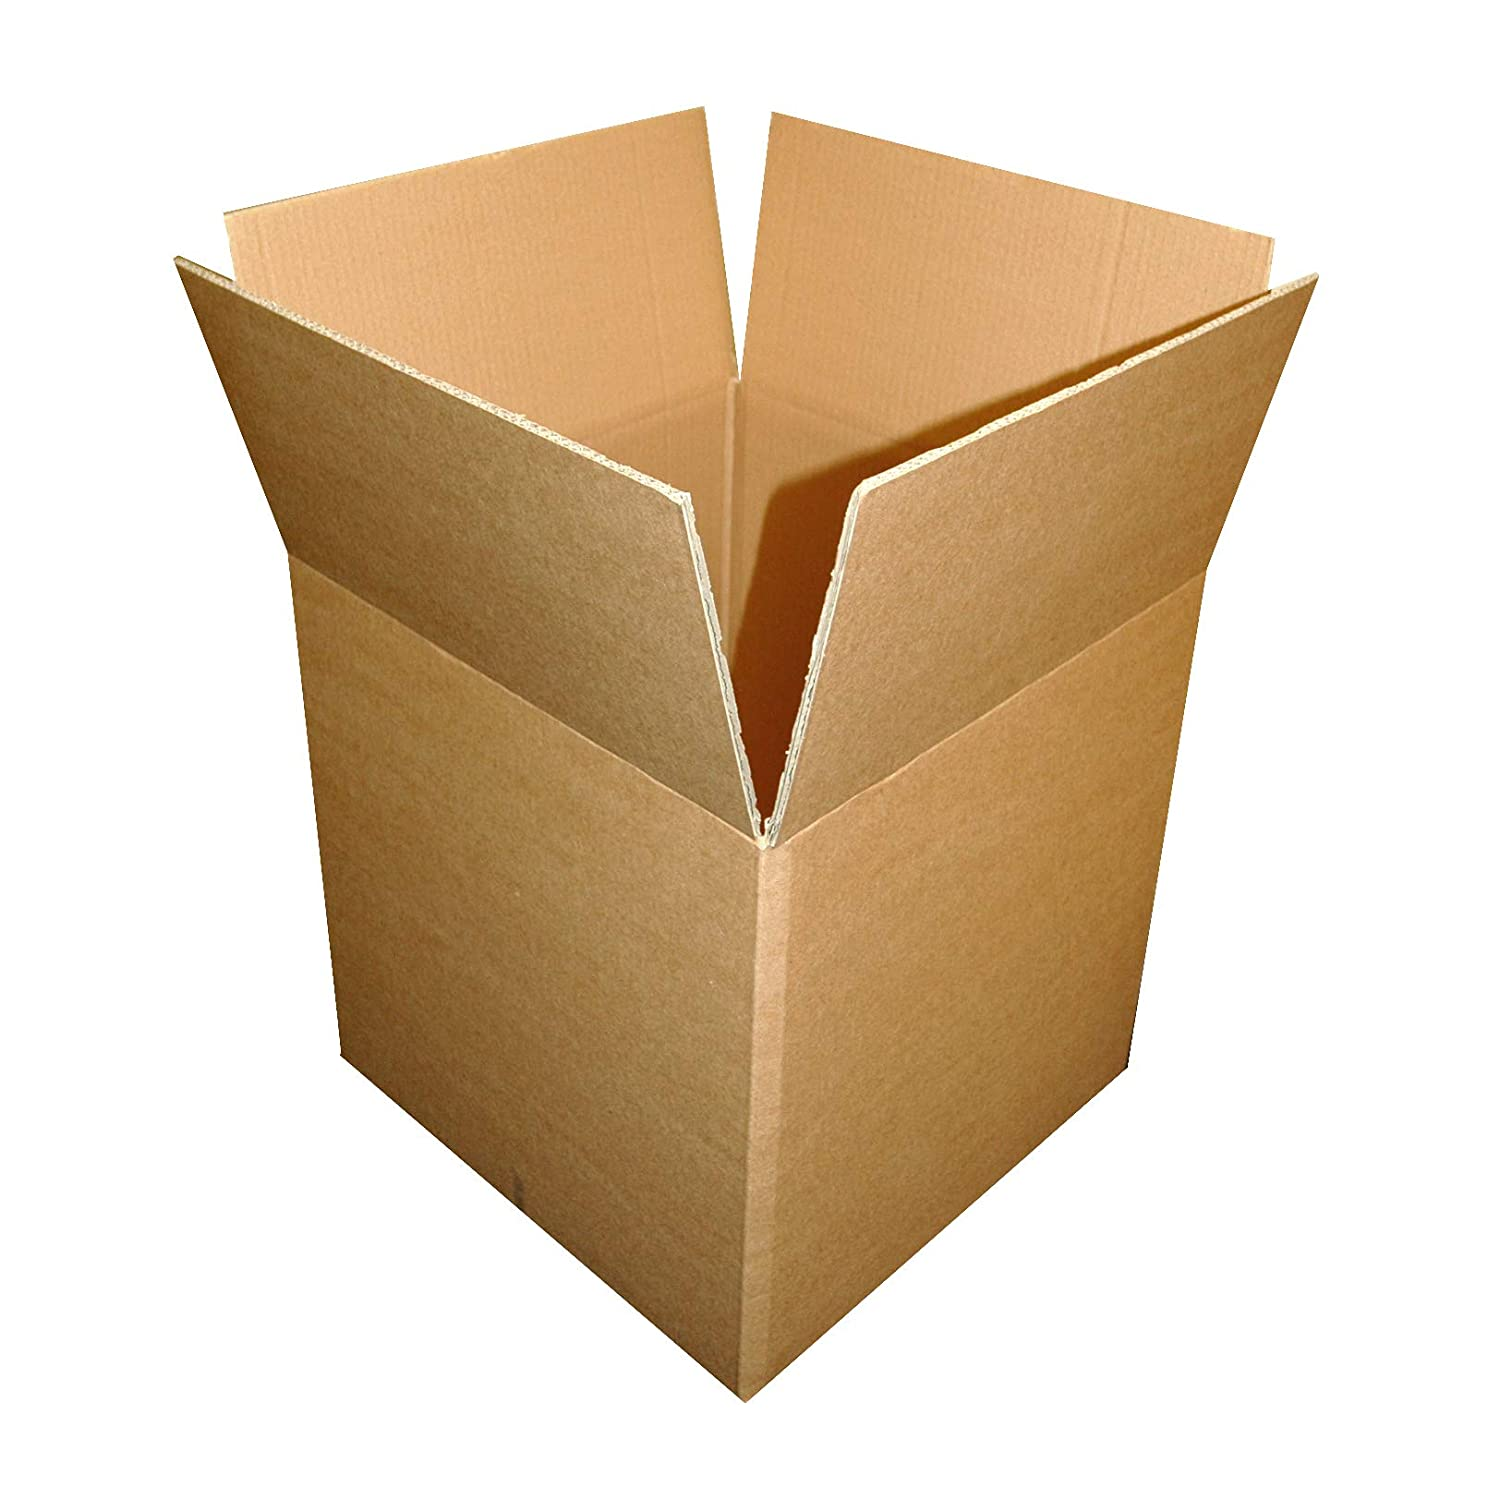 - 300+ Sizes Available 10 x Davpack Double Wall Cardboard Boxes 825L x 175W x 425H mm Ref ADW196B